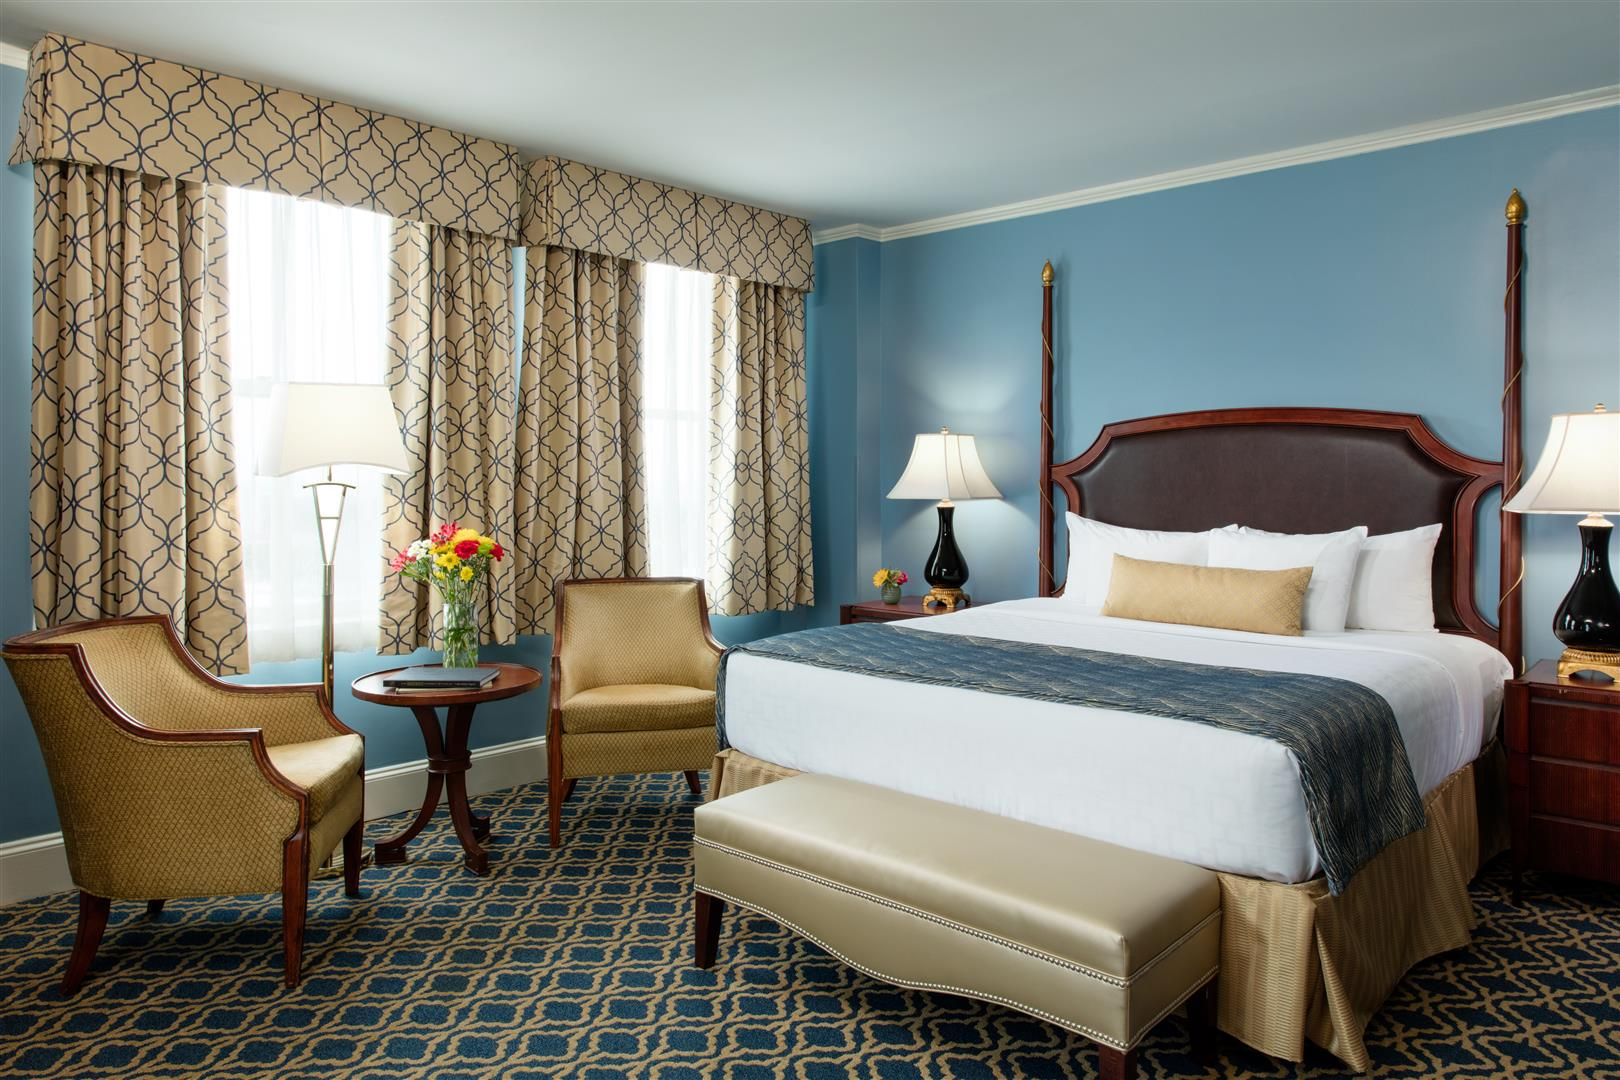 1-Night Stay at Francis Marion Hotel Image